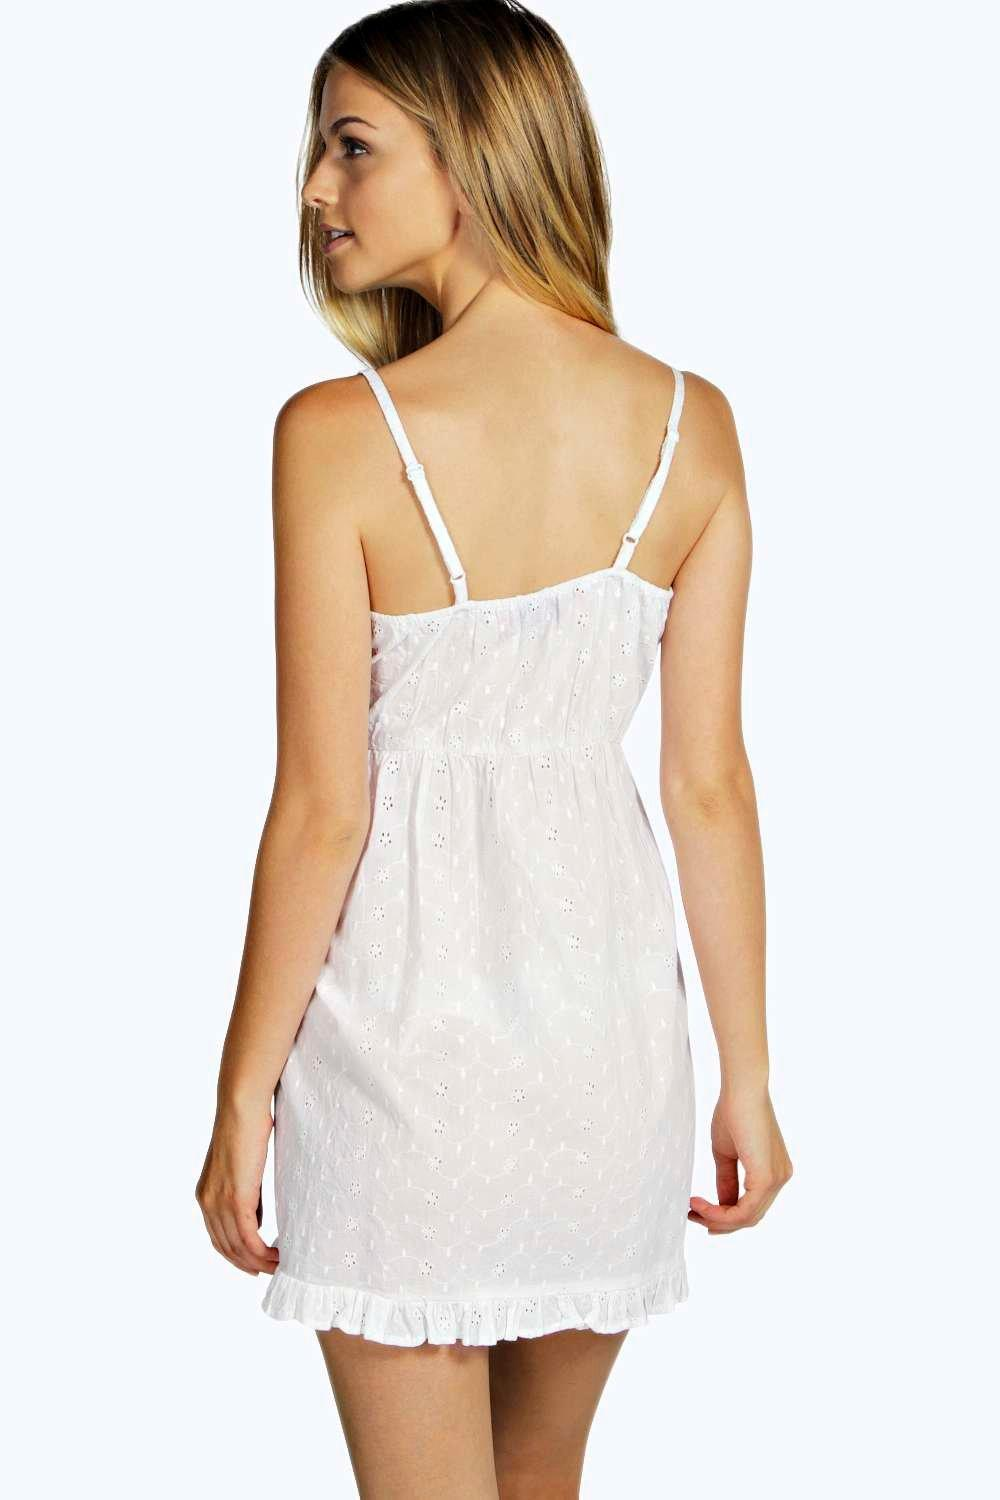 Baby doll clothes for women